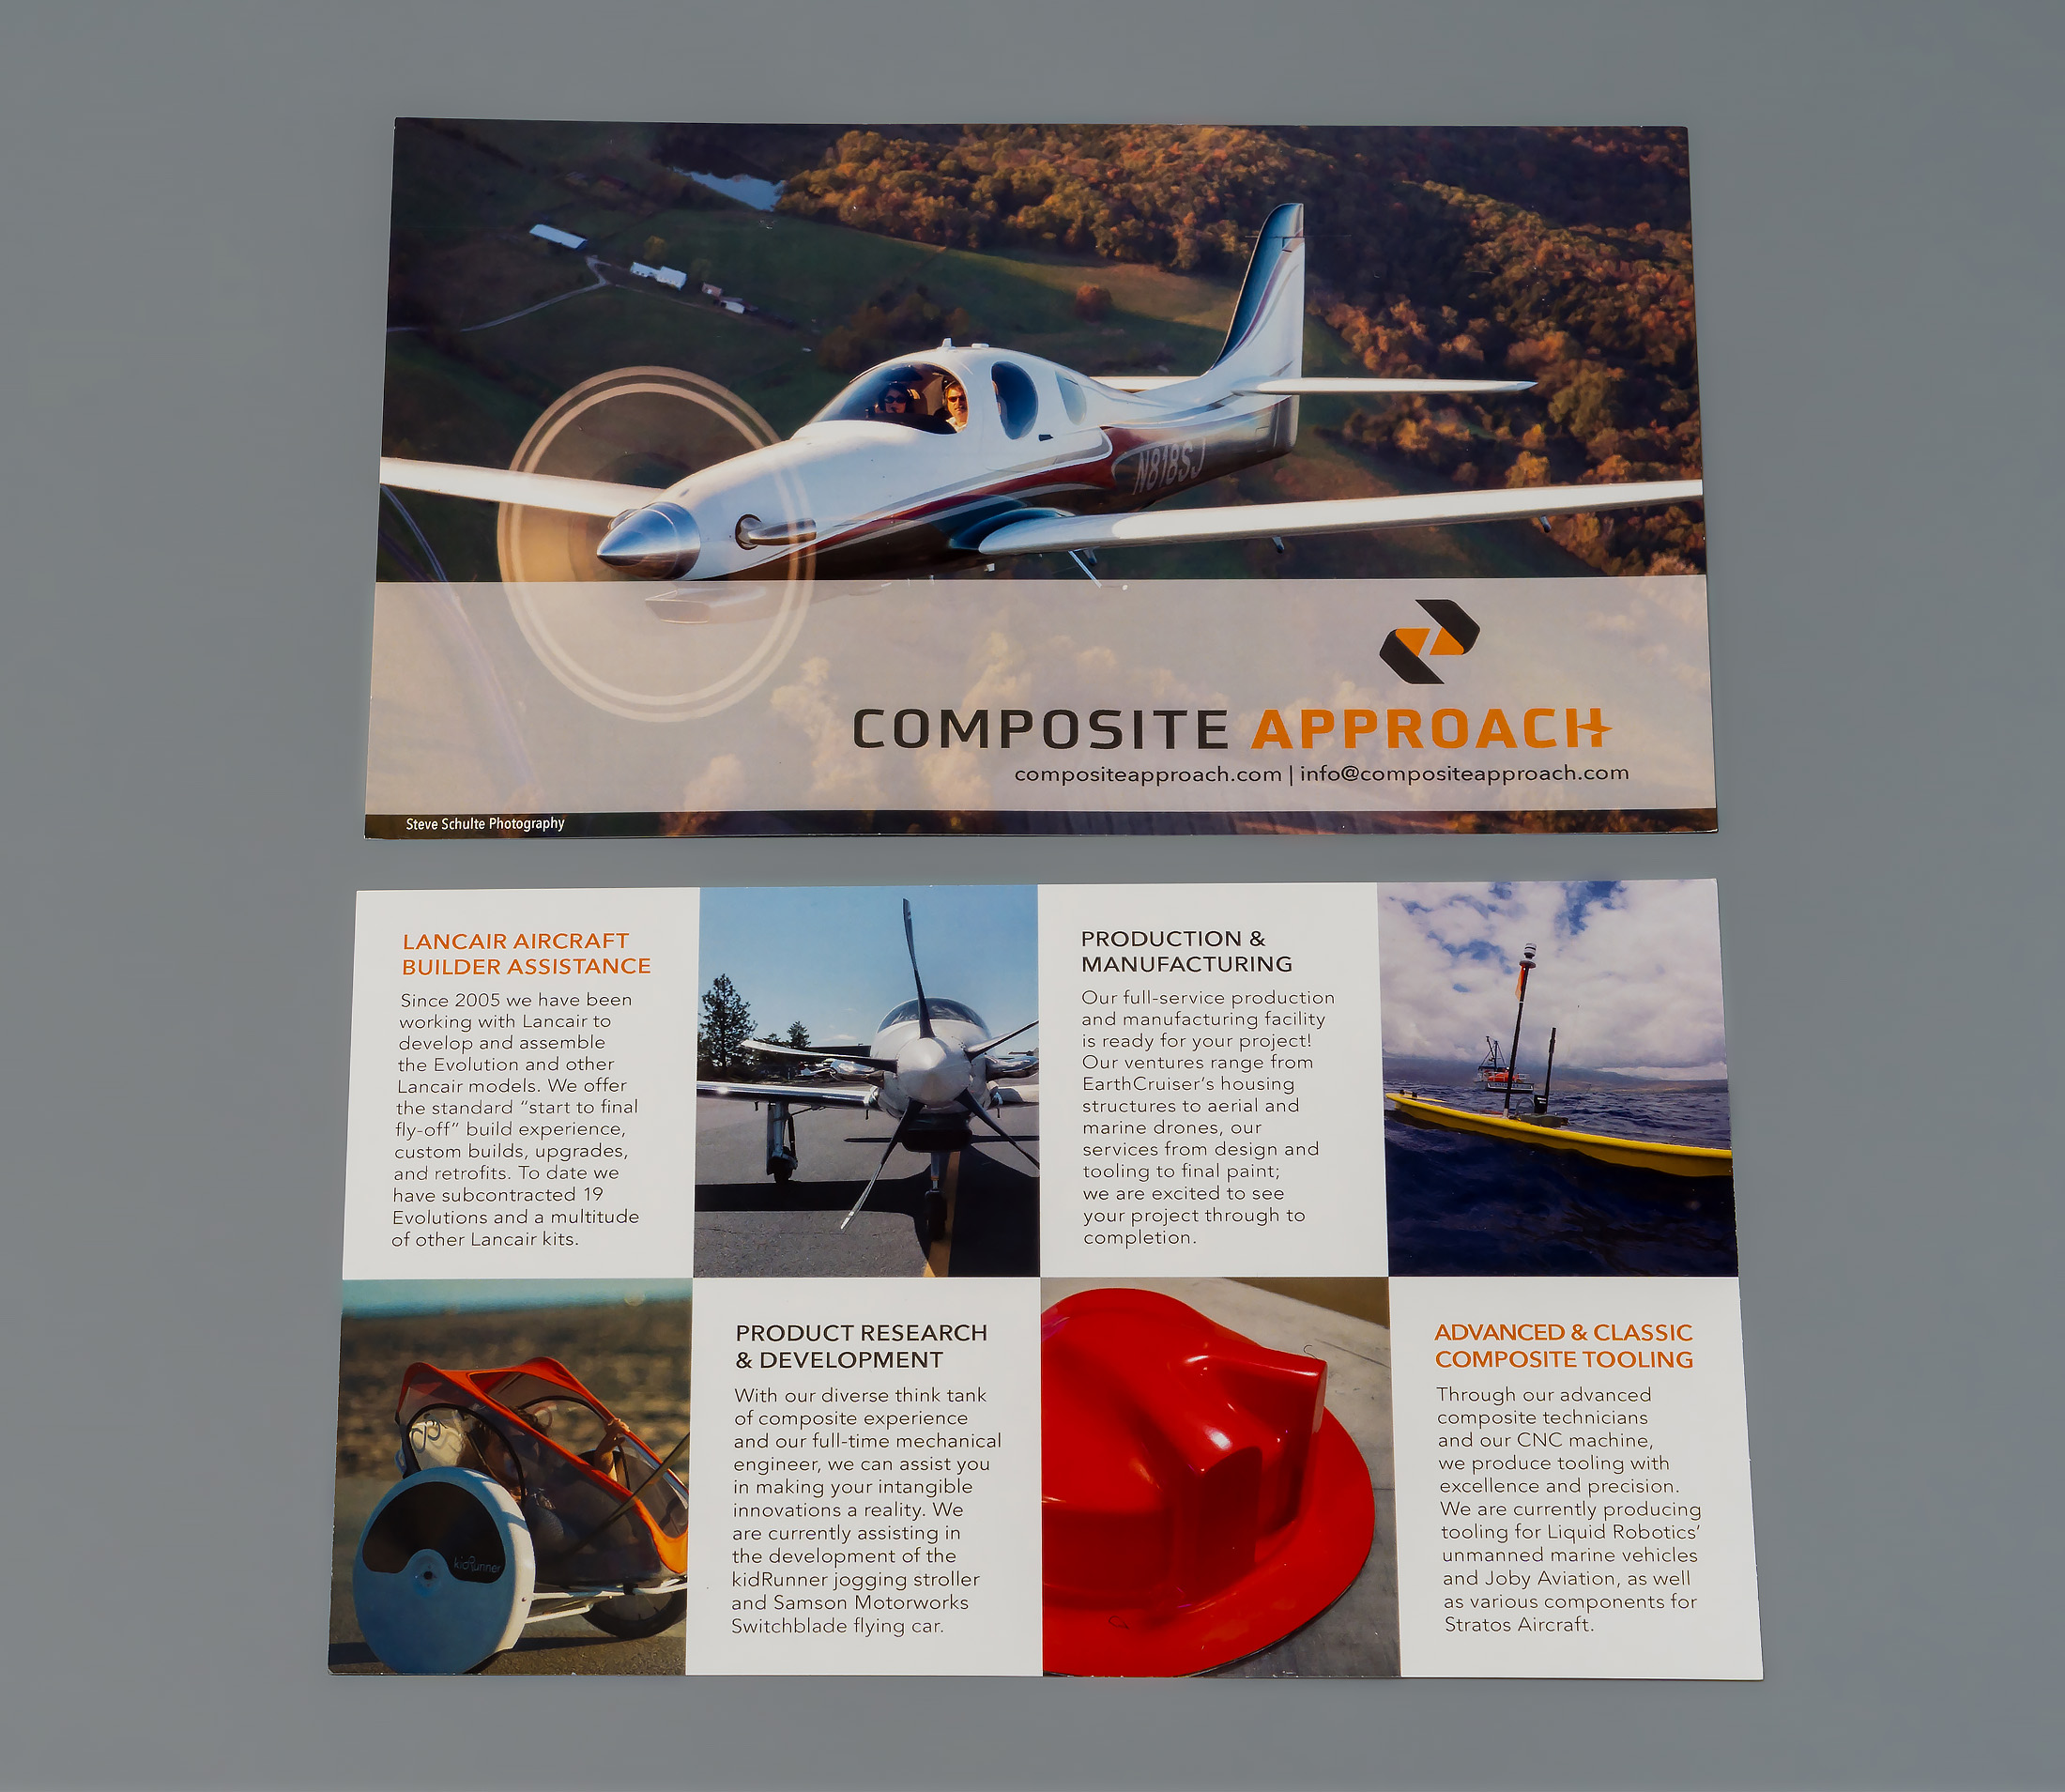 Composite-Approach-Collateral-1